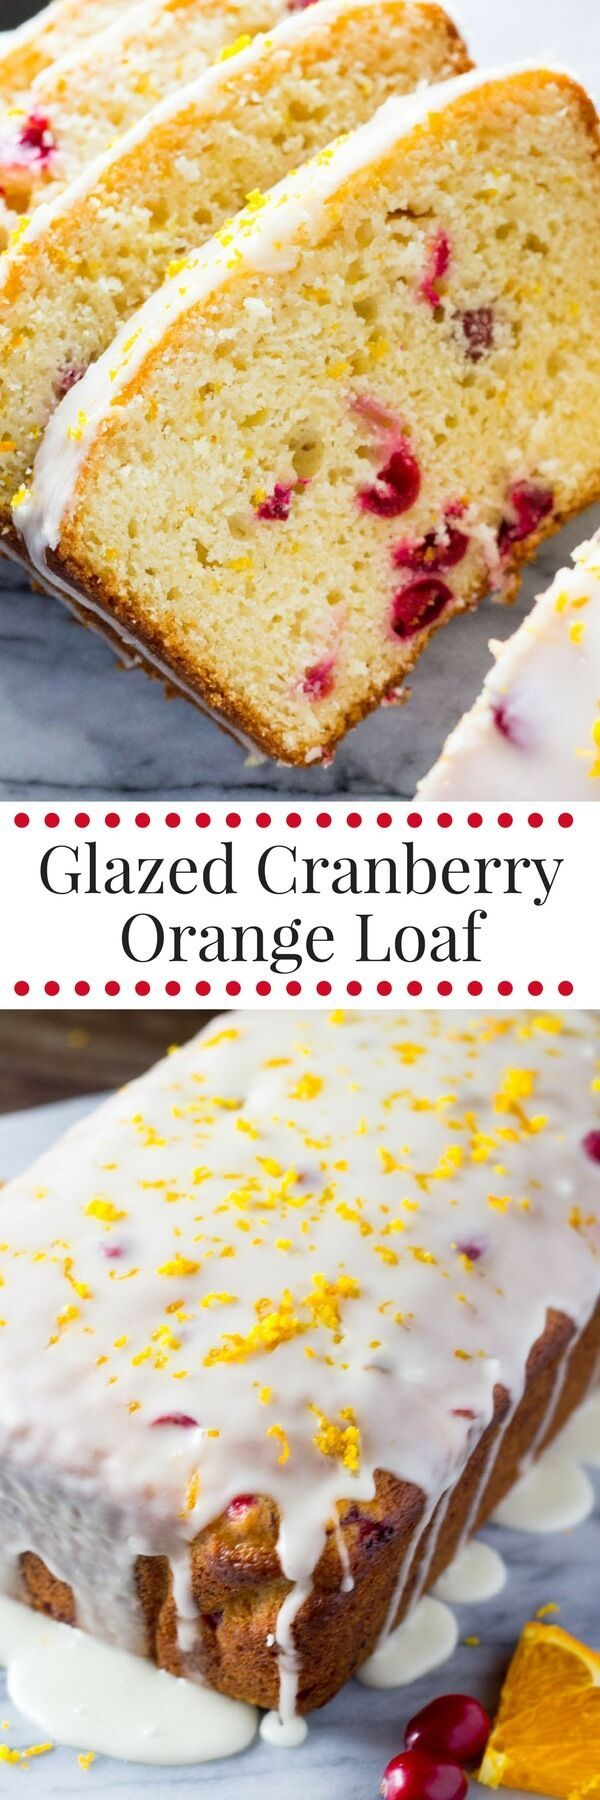 Perfectly soft & moist Cranberry Orange Loaf drizzled with sweet orange glaze. Make sure to include this recipe in your holiday baking!